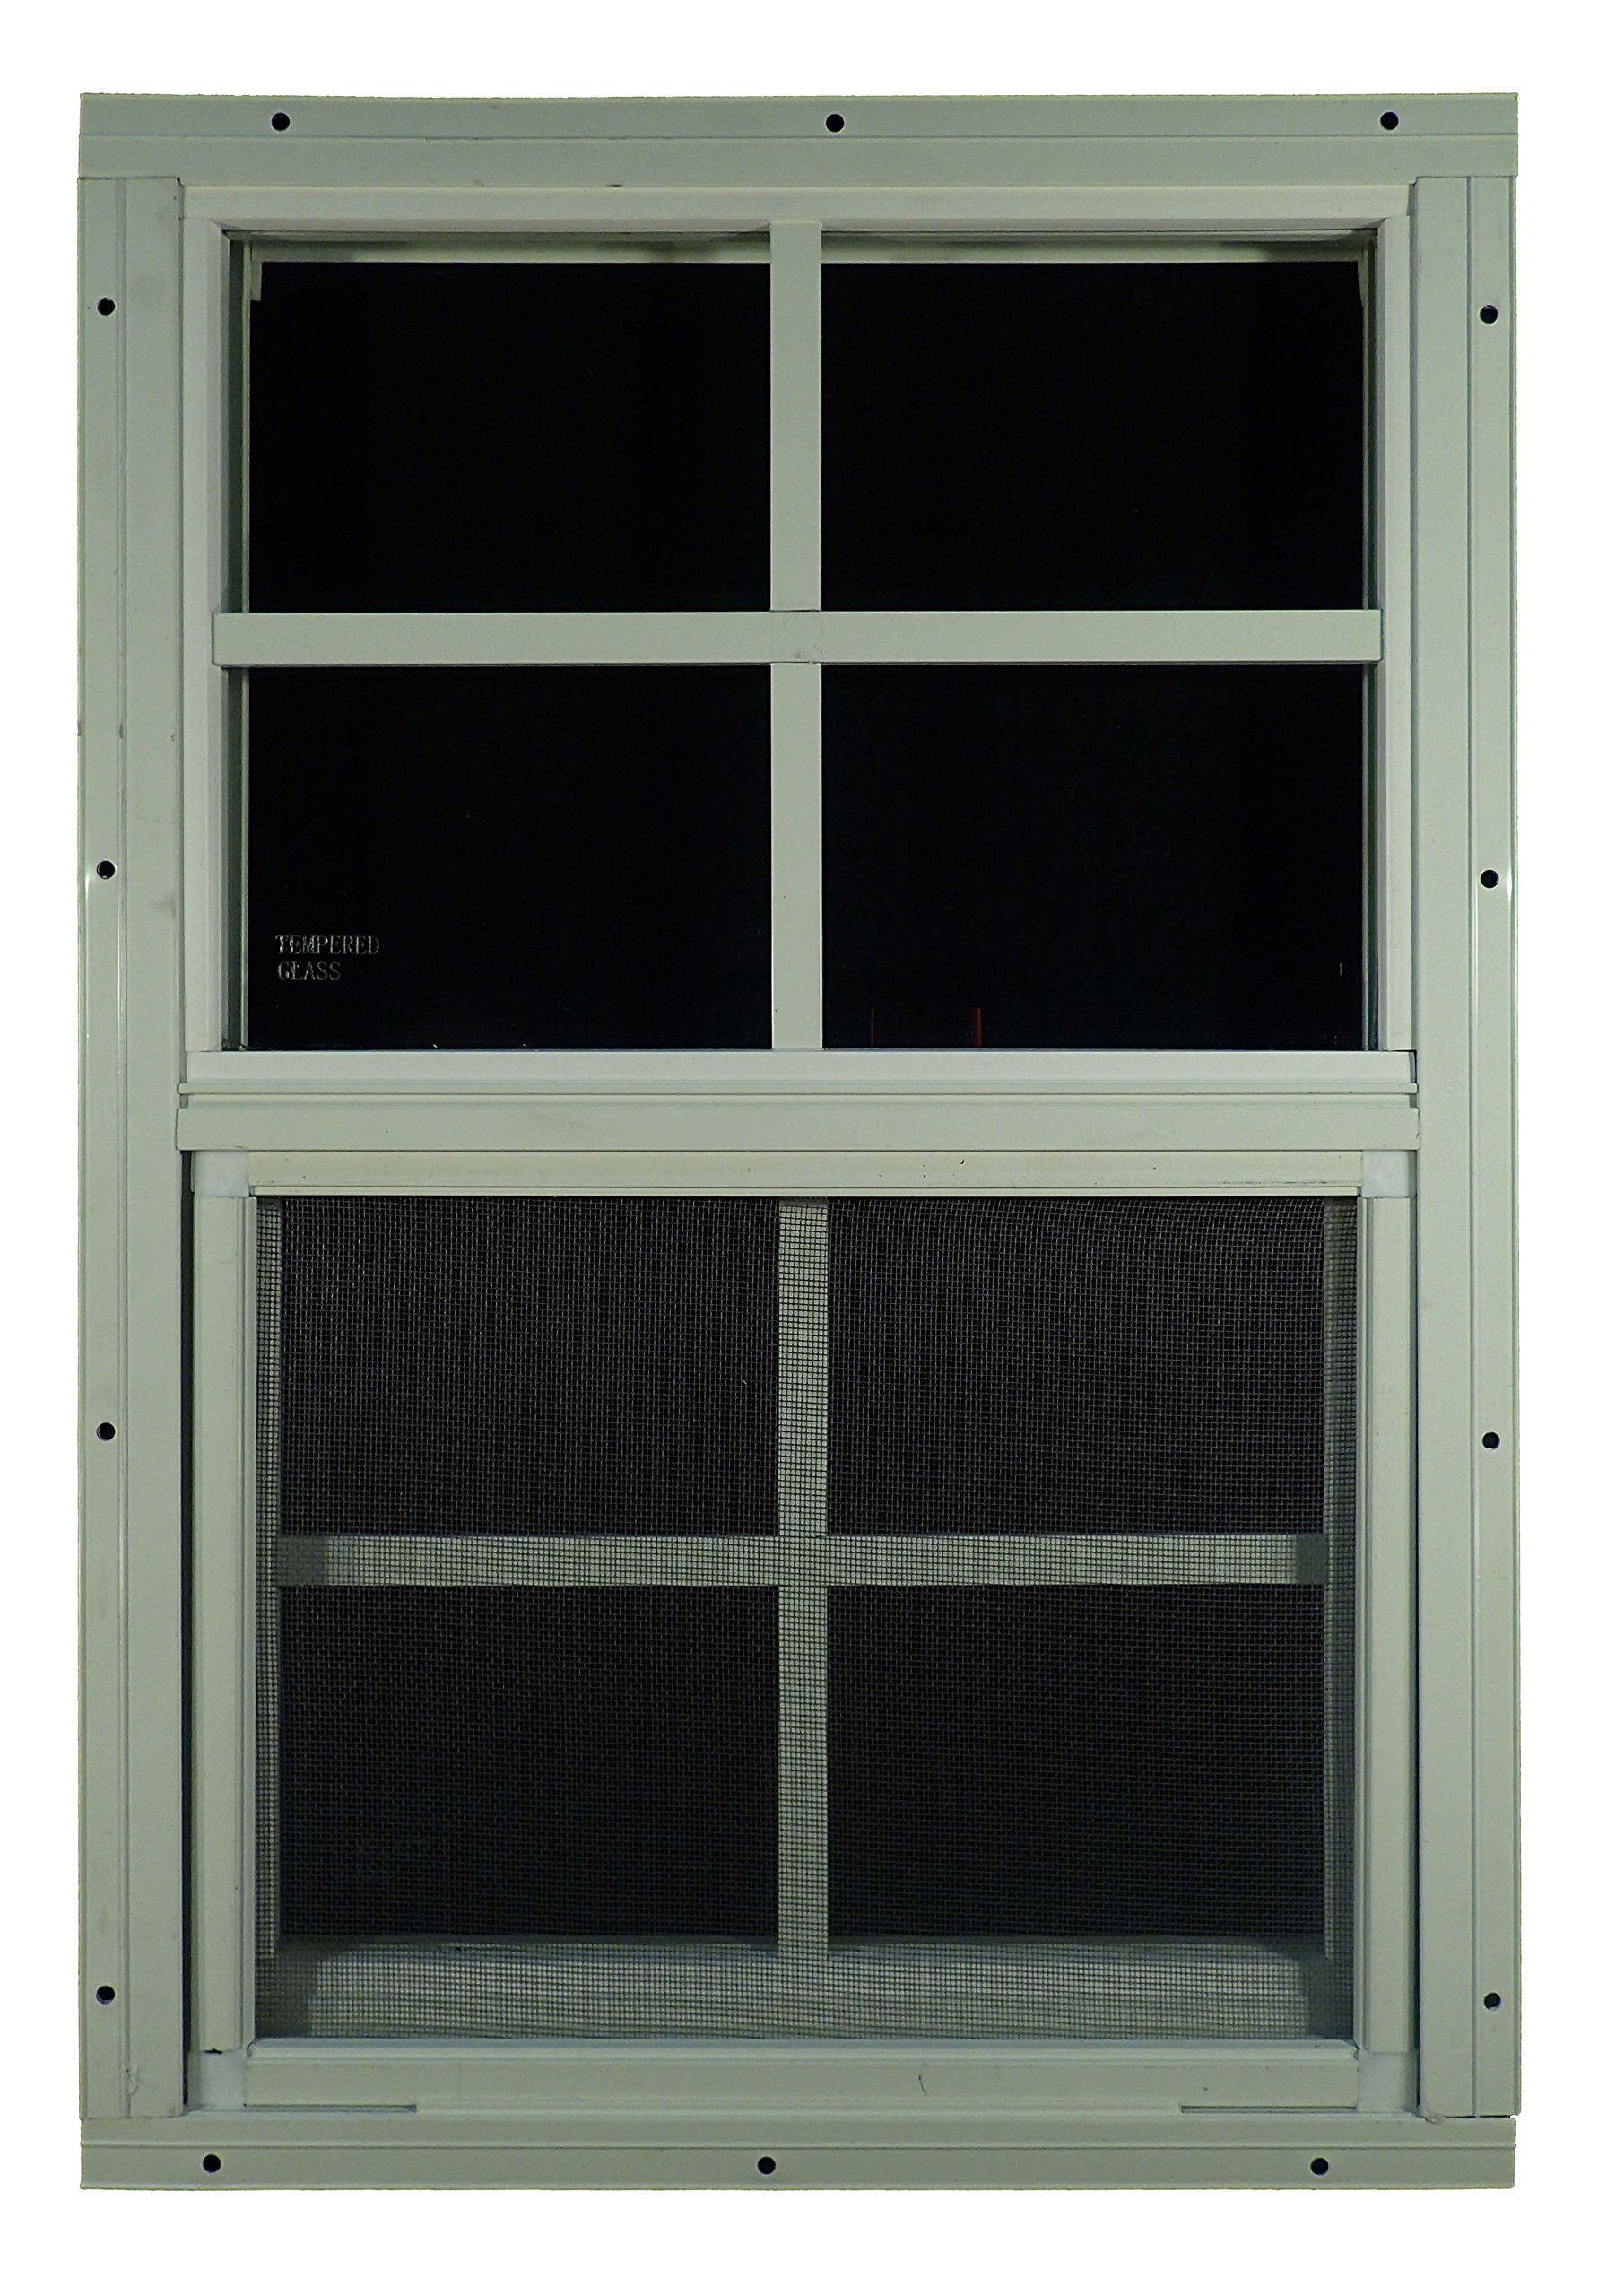 Shed Windows 14'' W x 21'' H - Flush Mount w/ Safety Glass - Playhouse Windows (White) by Outdoor Play and Storage (Image #1)